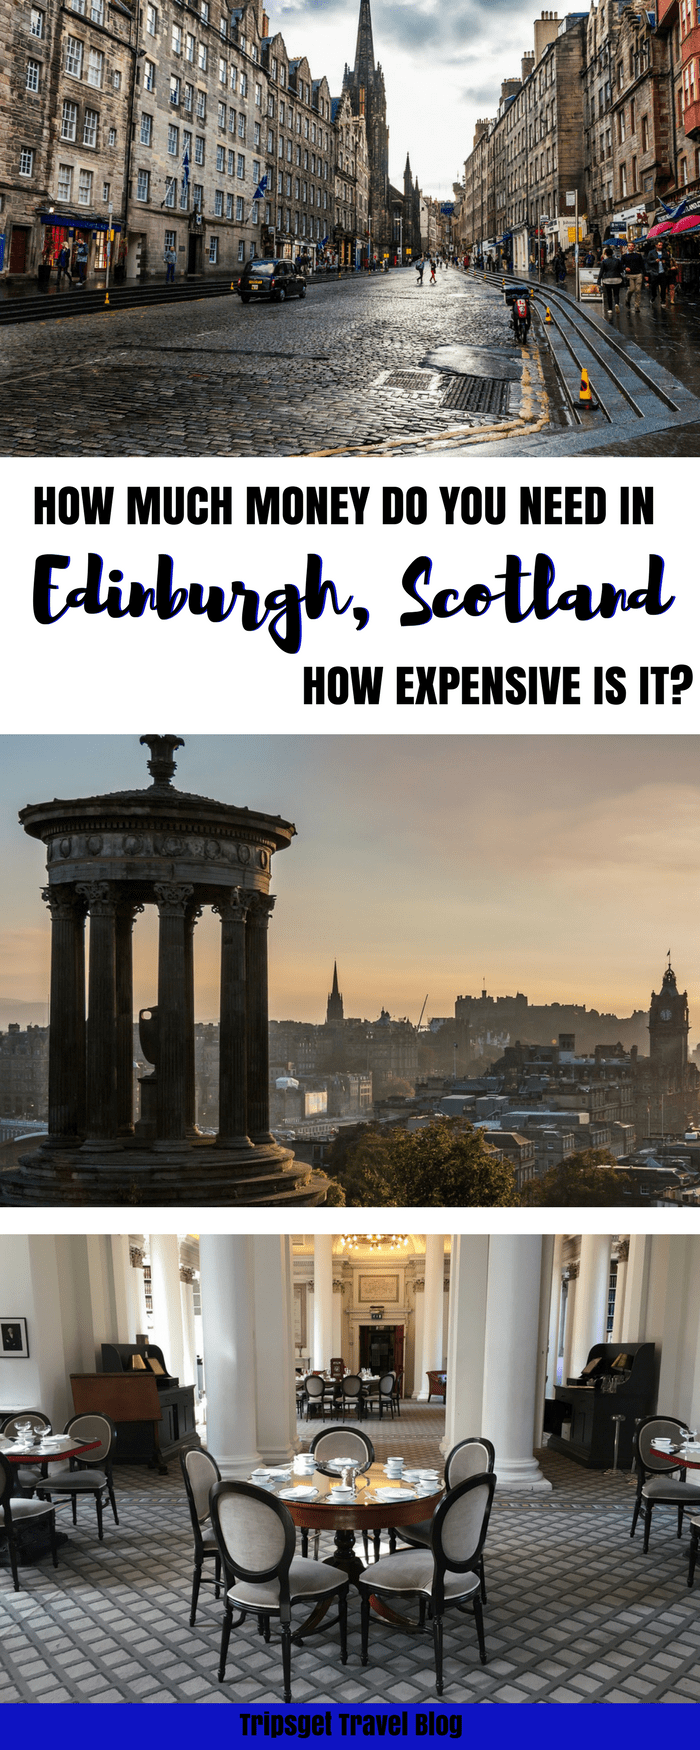 Guide to Edinburgh prices. How expensive is Edinburgh, Scotland? Prices in Edinburgh. Budget-friendly Edinburgh.